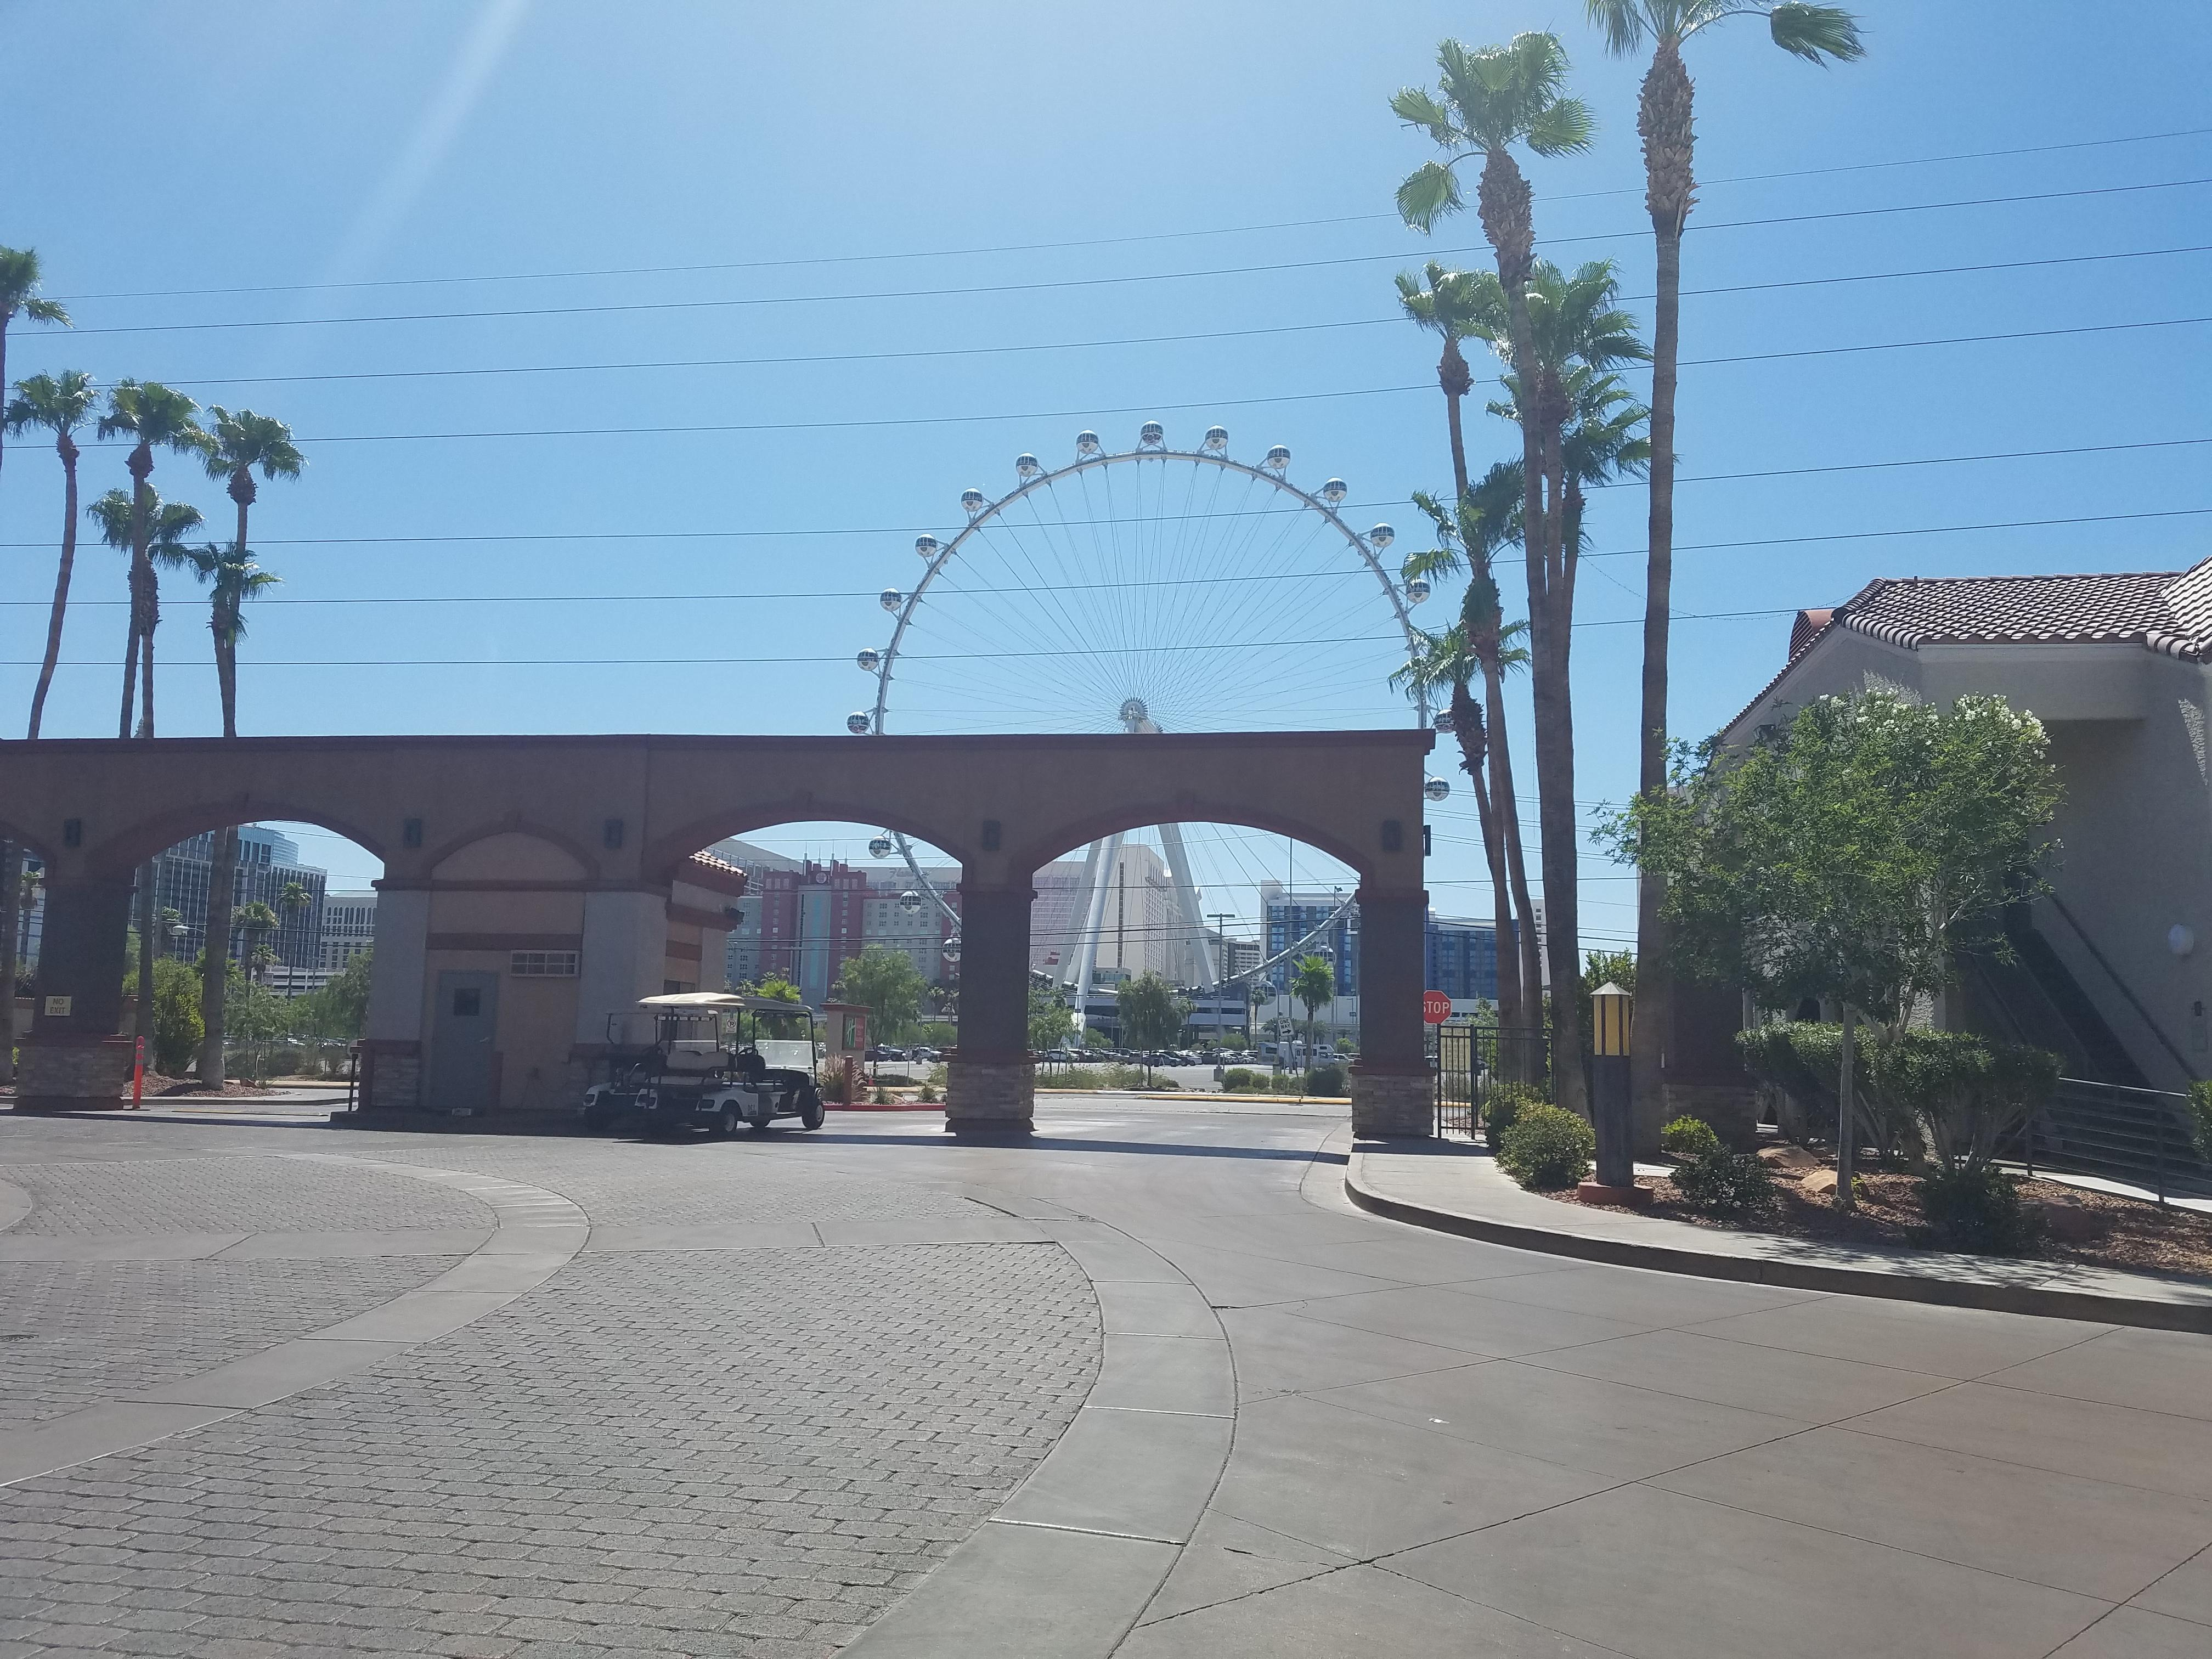 View from the entrance of hotel